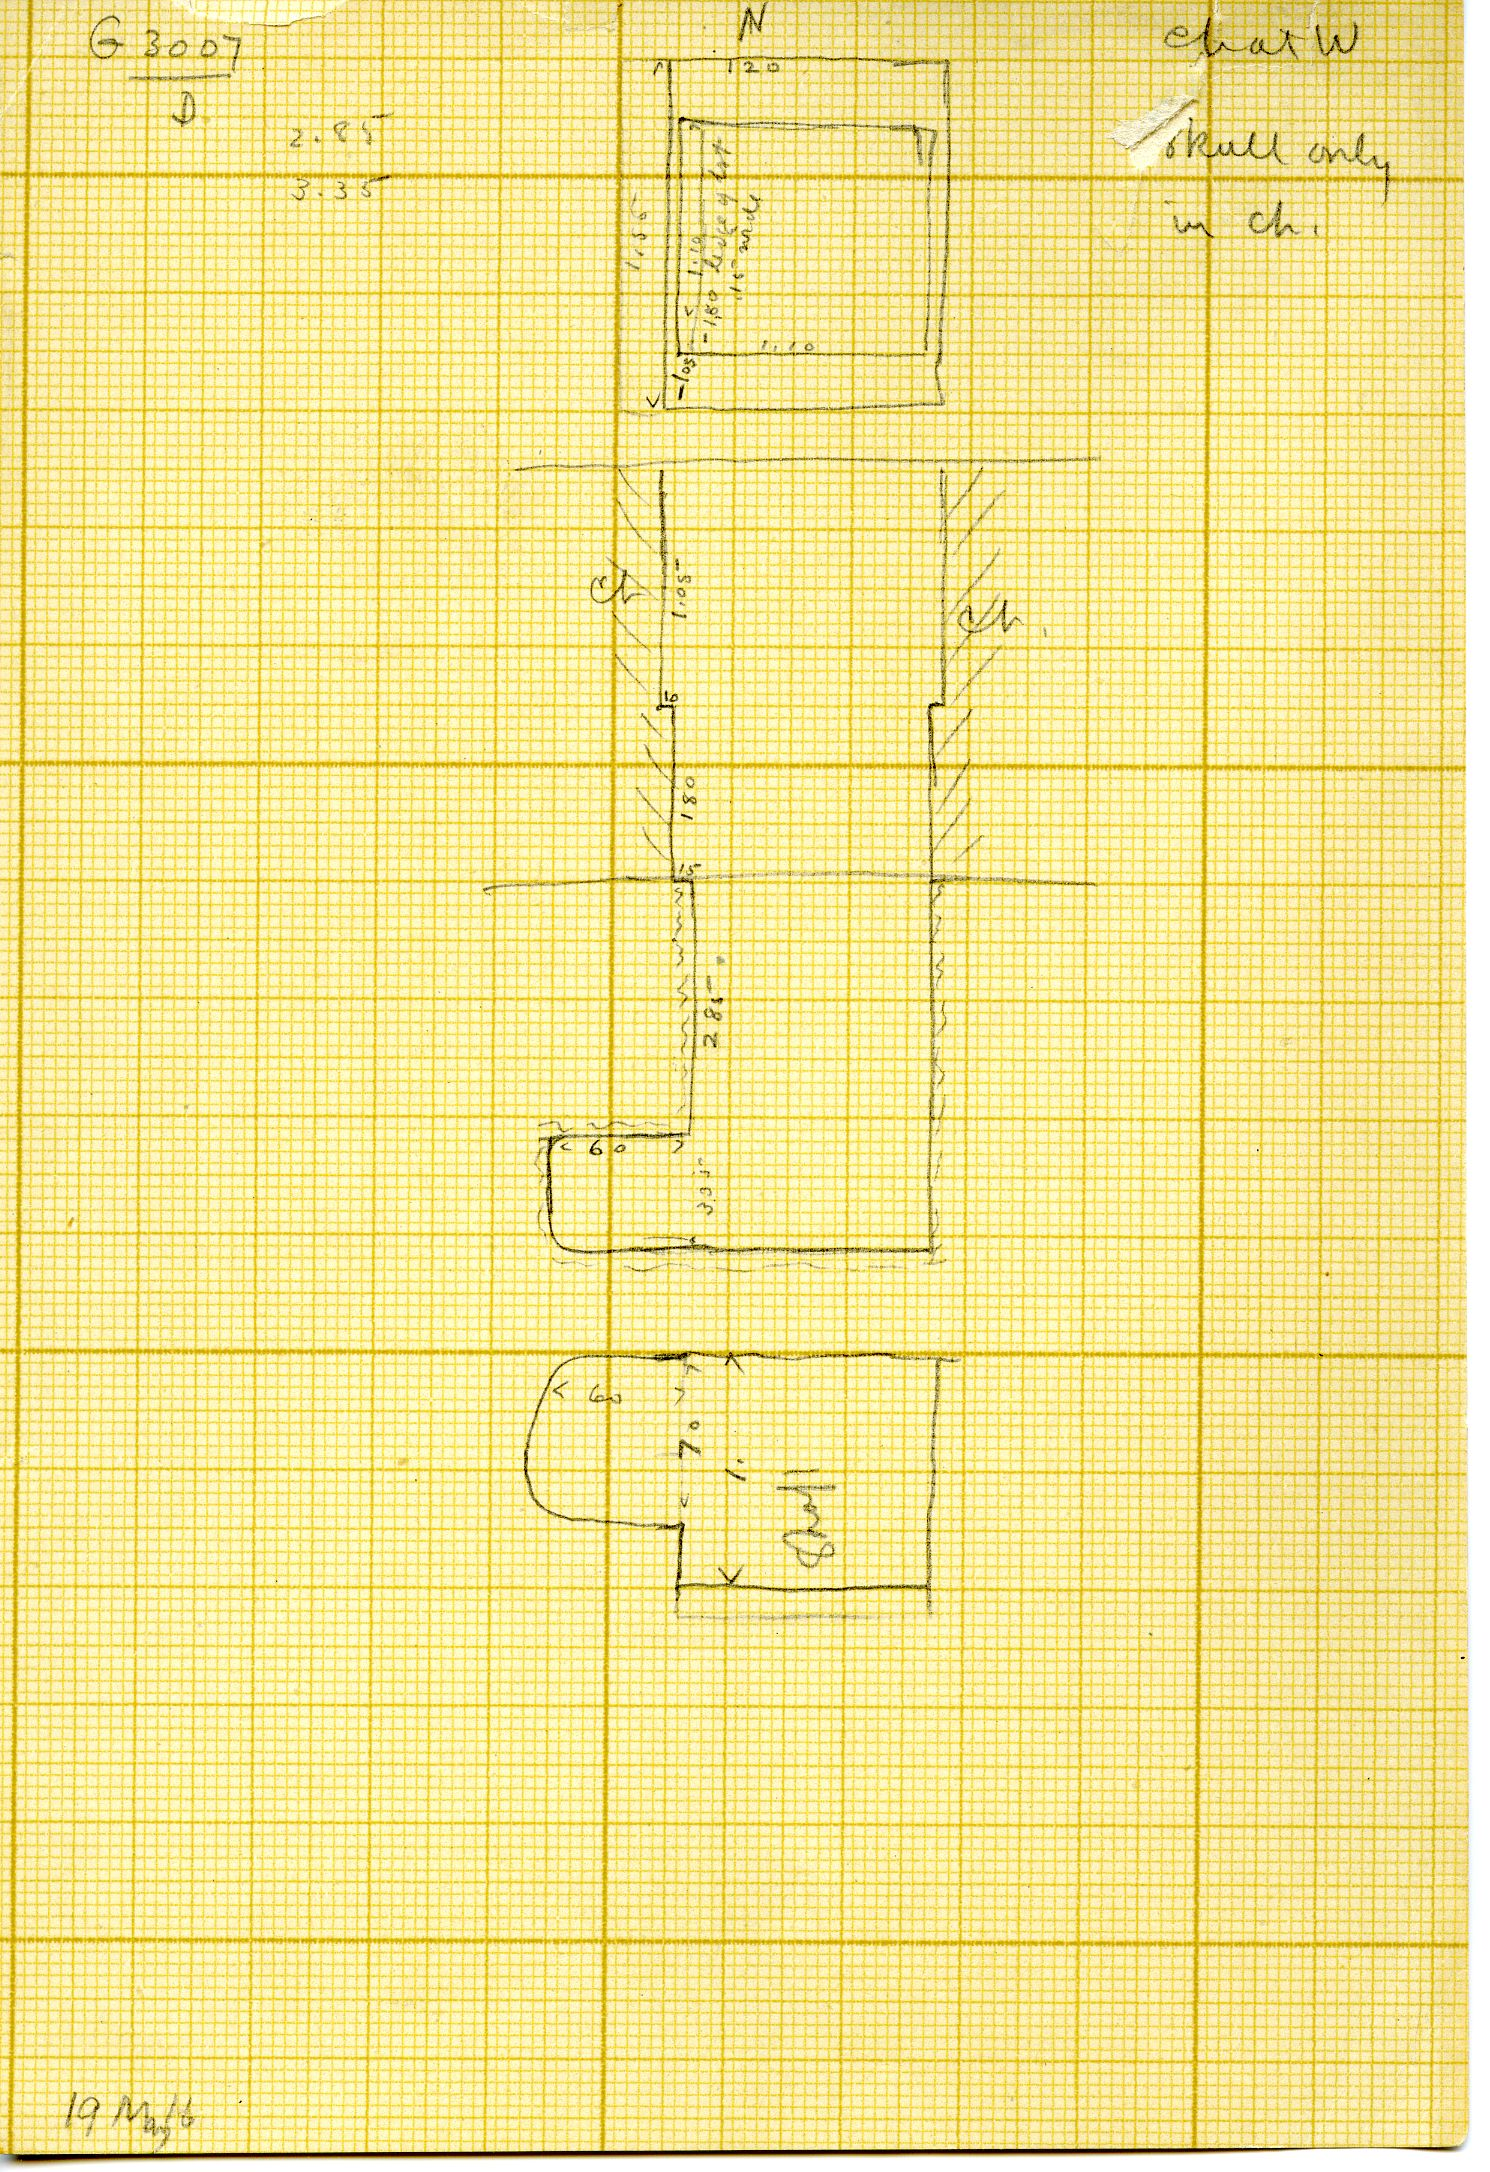 Maps and plans: G 3007, Shaft D